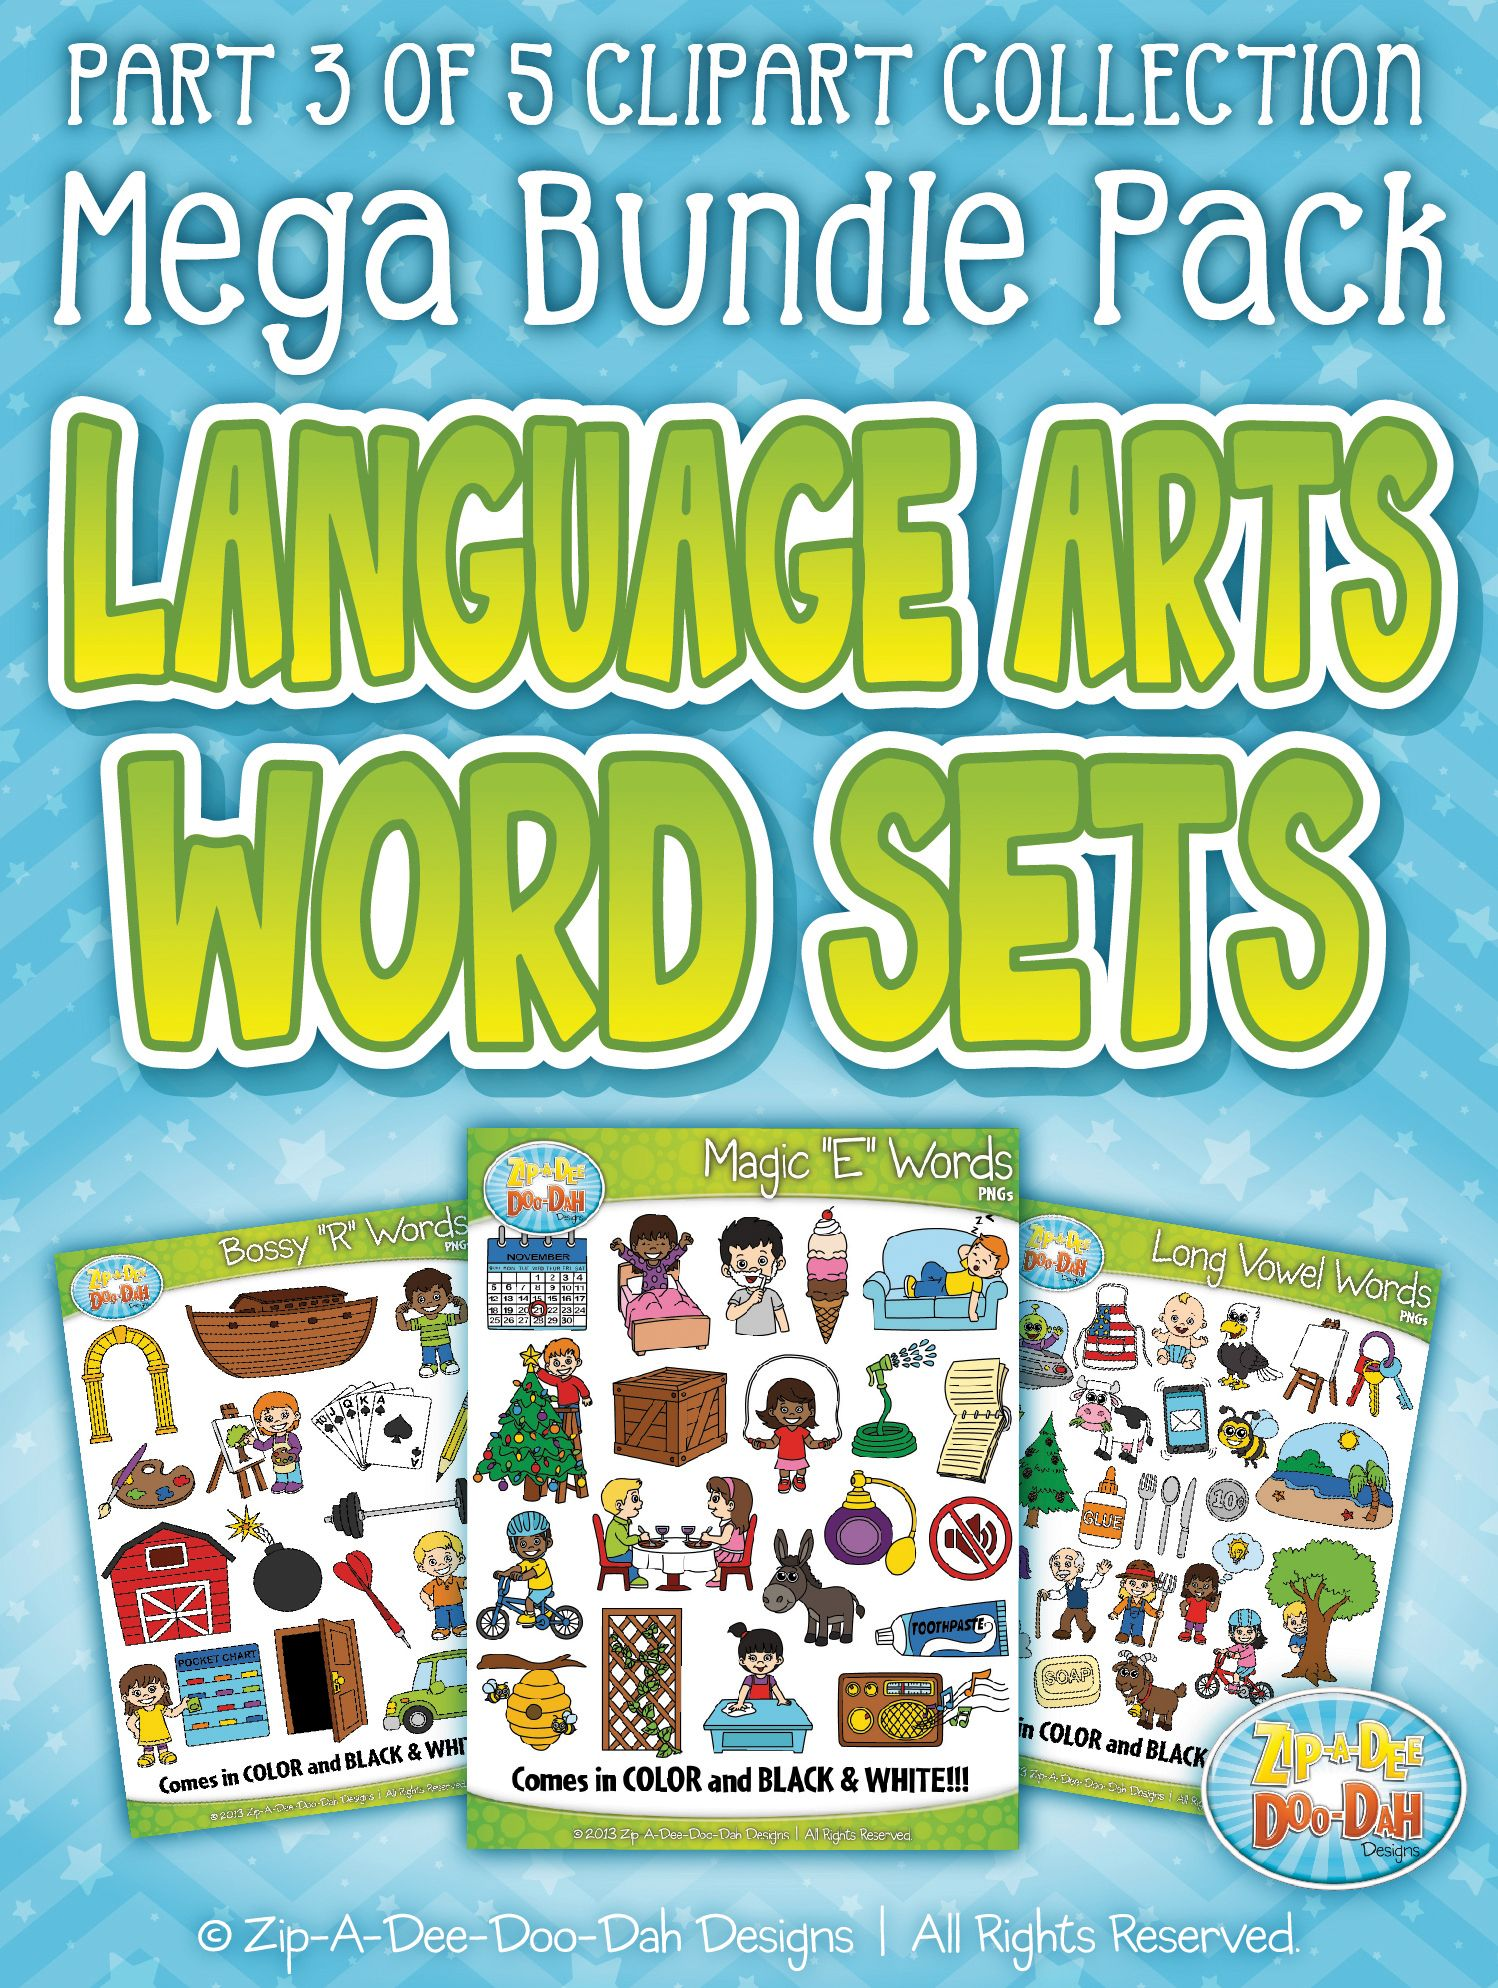 Language Arts Words Clipart Part 3 Mega Bundle Zip A Dee